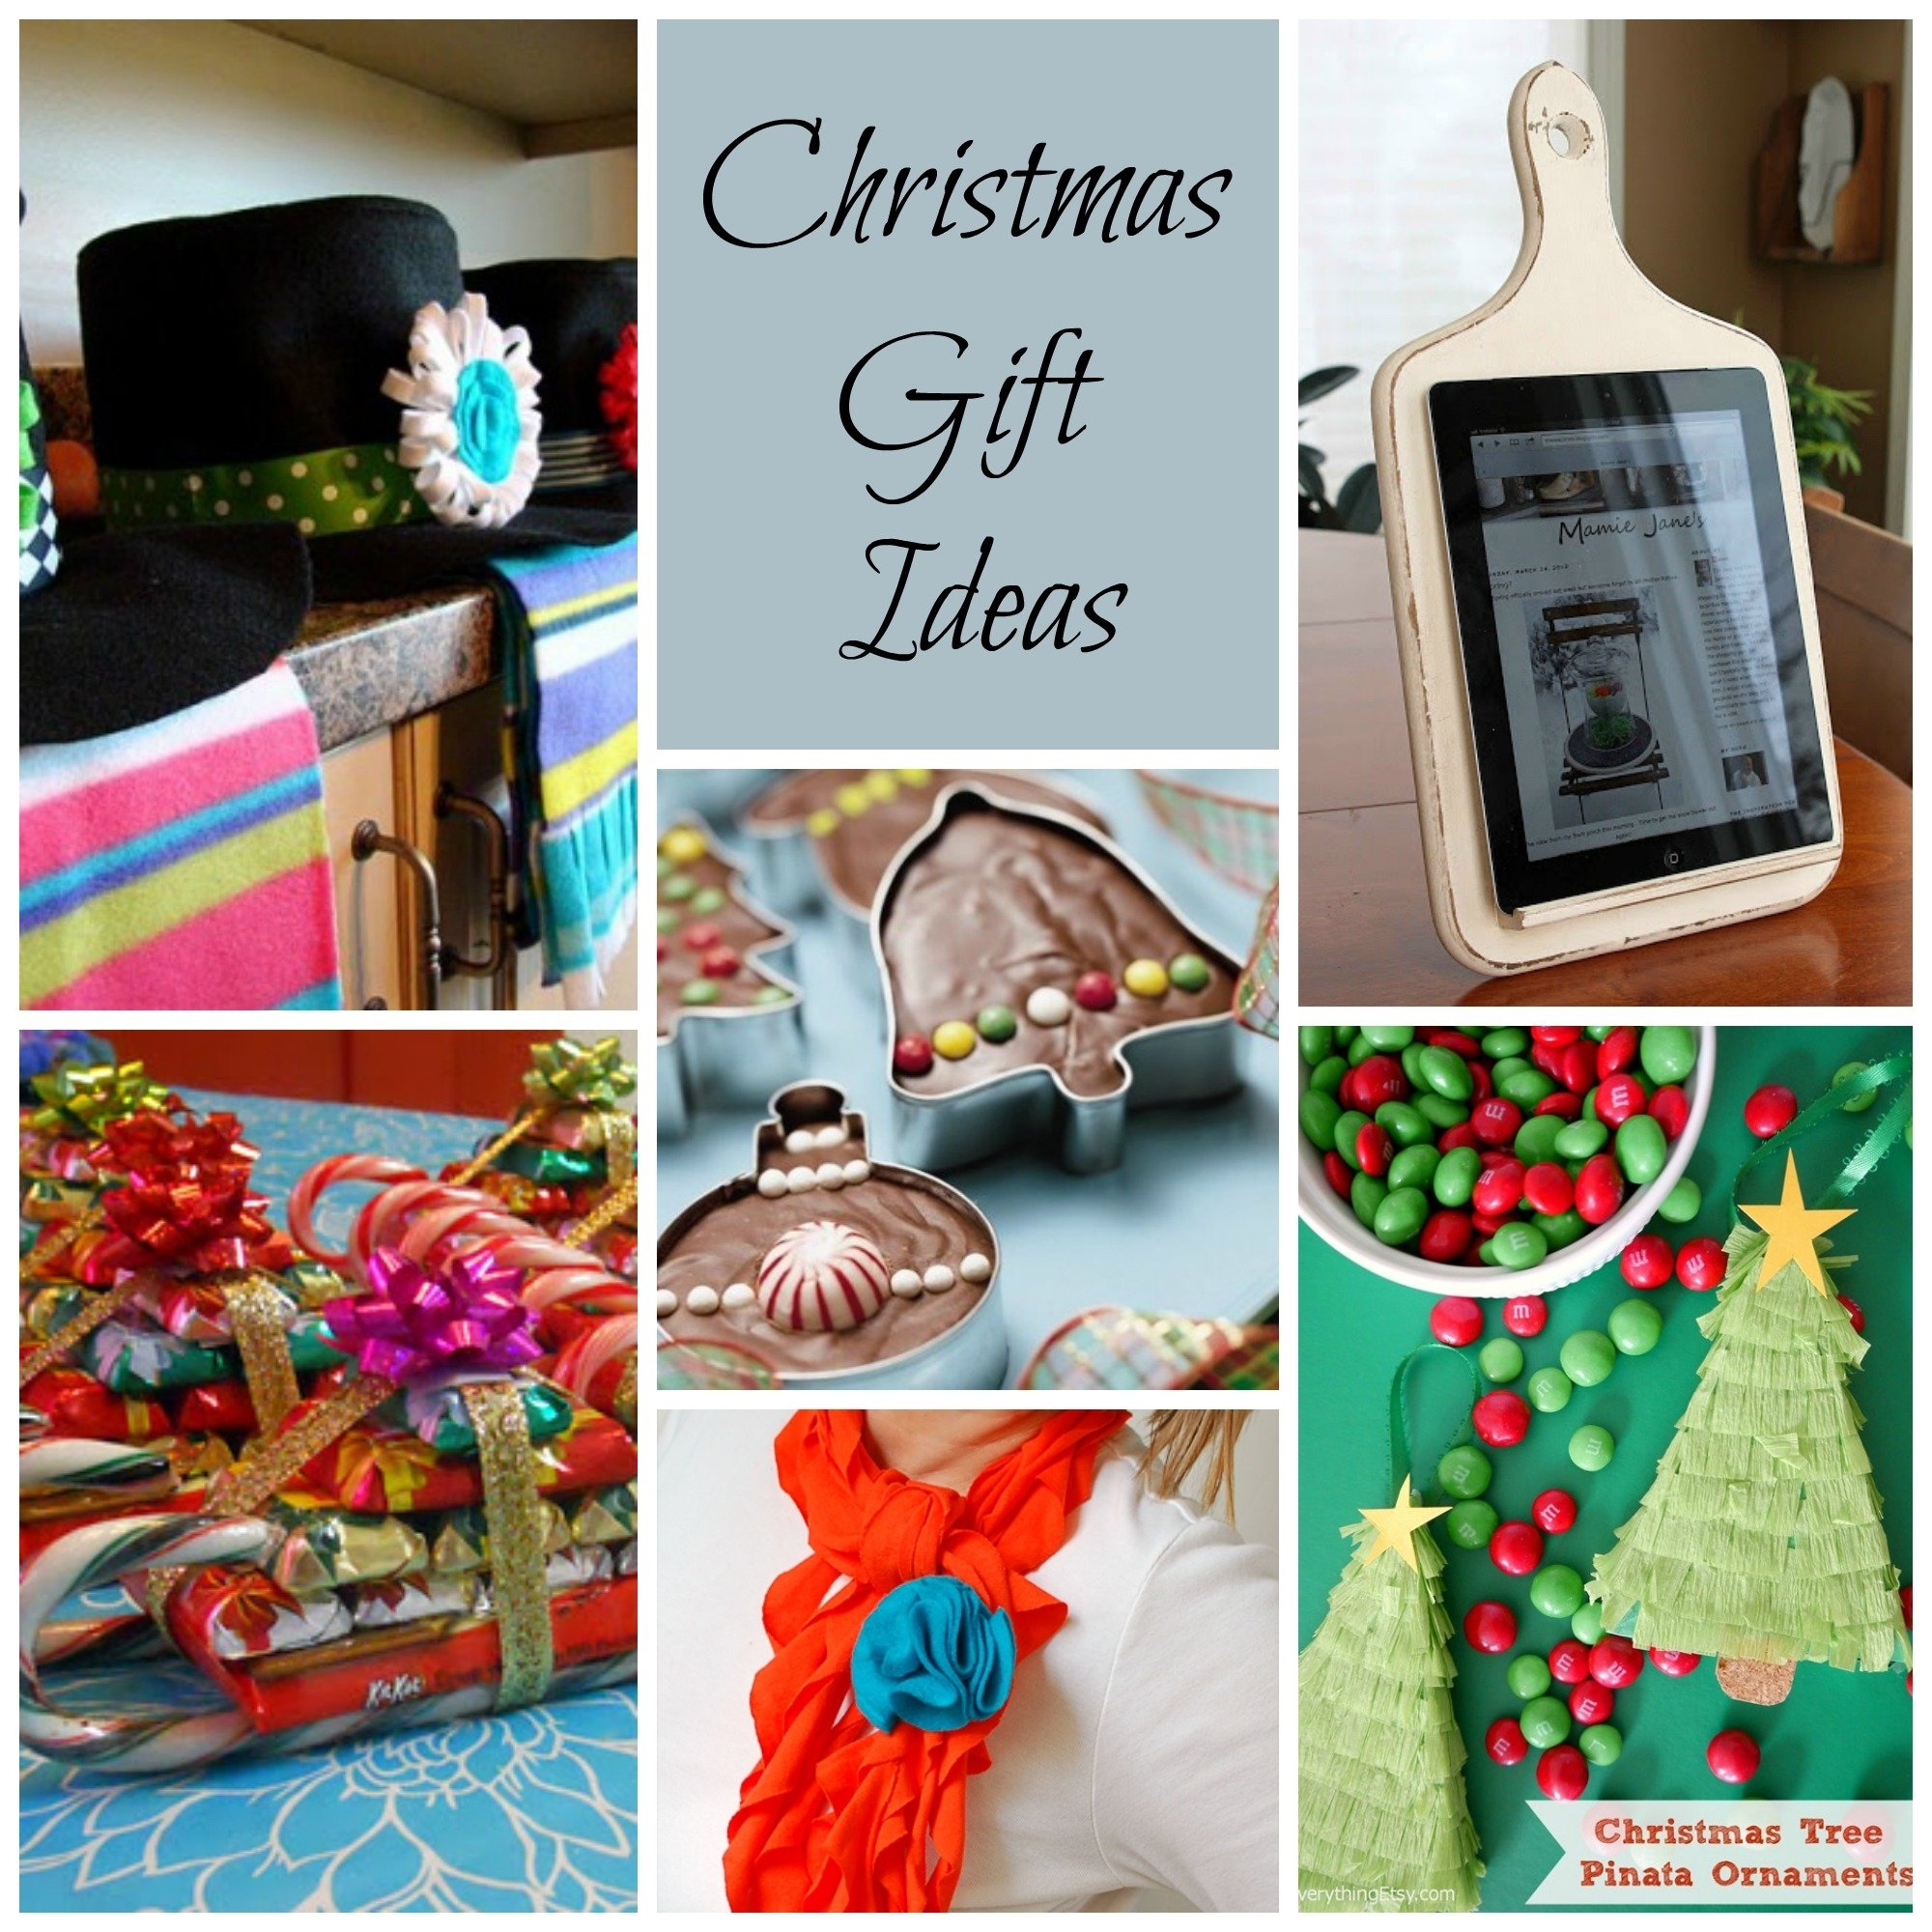 10 Awesome Family Gifts Ideas For Christmas cheap christmas gifts for family frugal christmas gift ideas saving 2